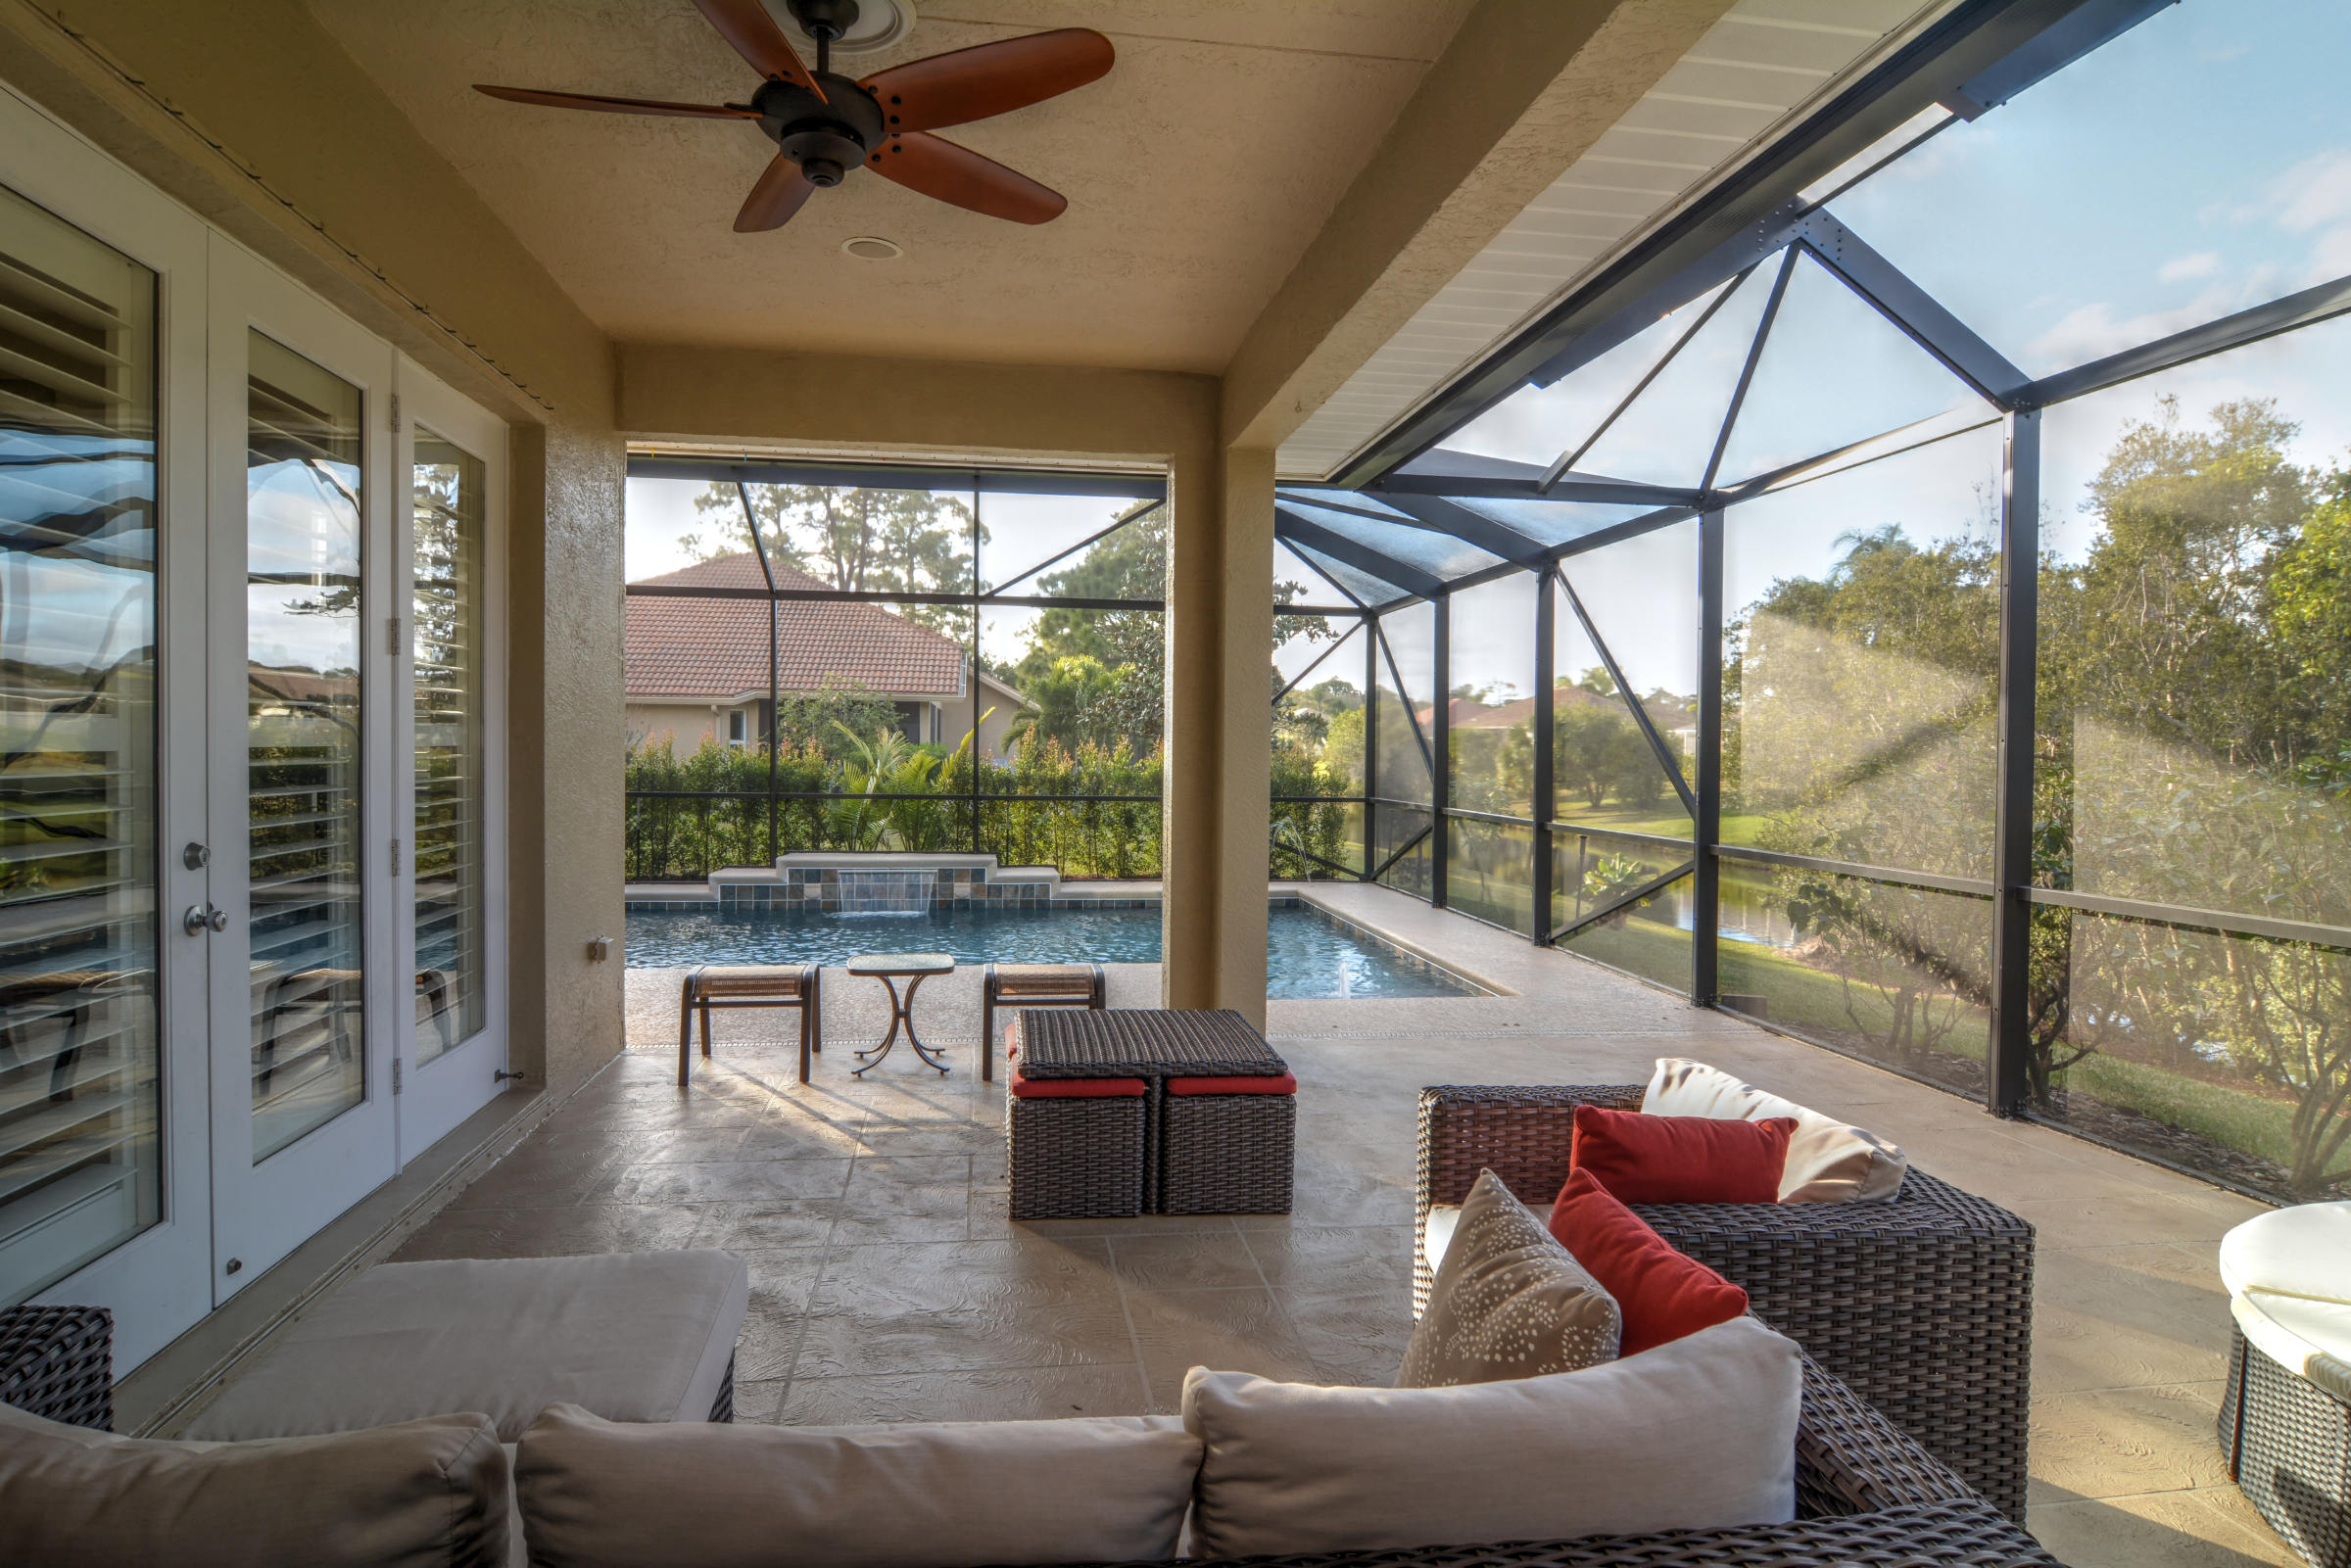 MONTE CARLO COUNTRY CLUB-UNIT TWO- LOT 230 (OR 3829-1324)